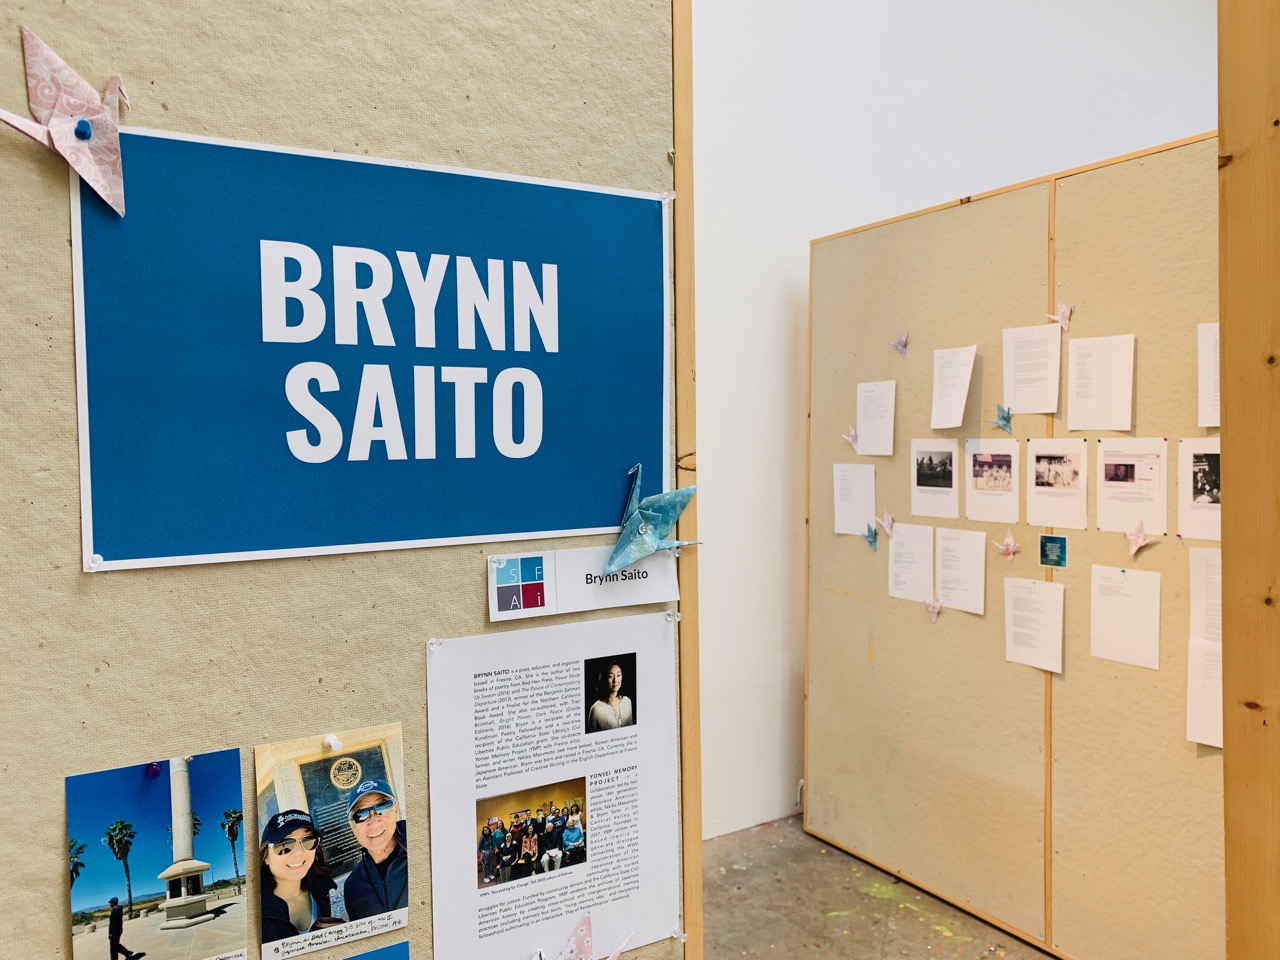 Process notes, poems, and photographs in my residency studio space at the Santa Fe Art Institute.